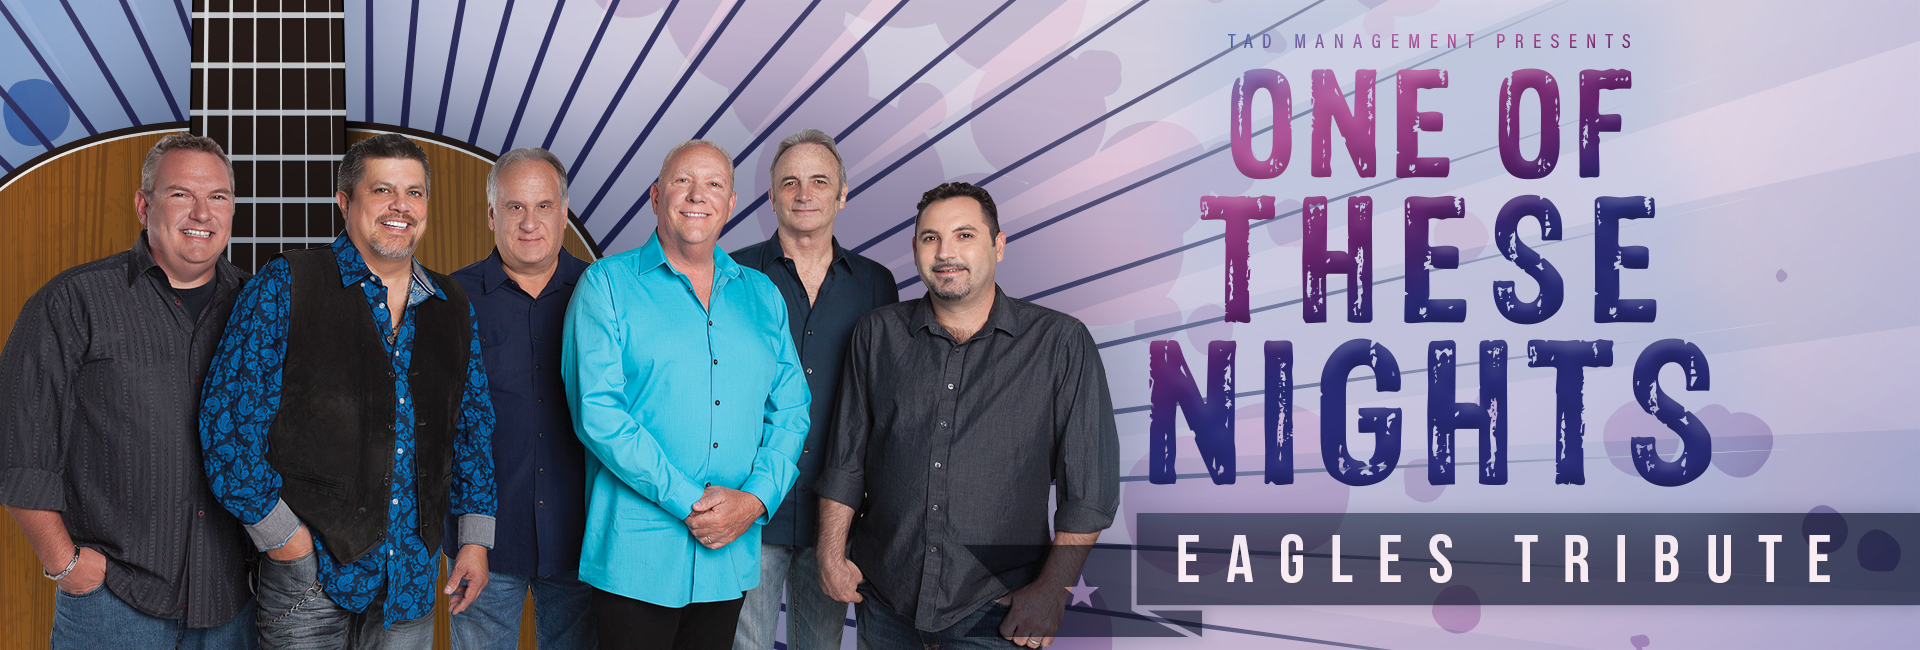 One of These Nights-Eagles Tribute thumbnail image